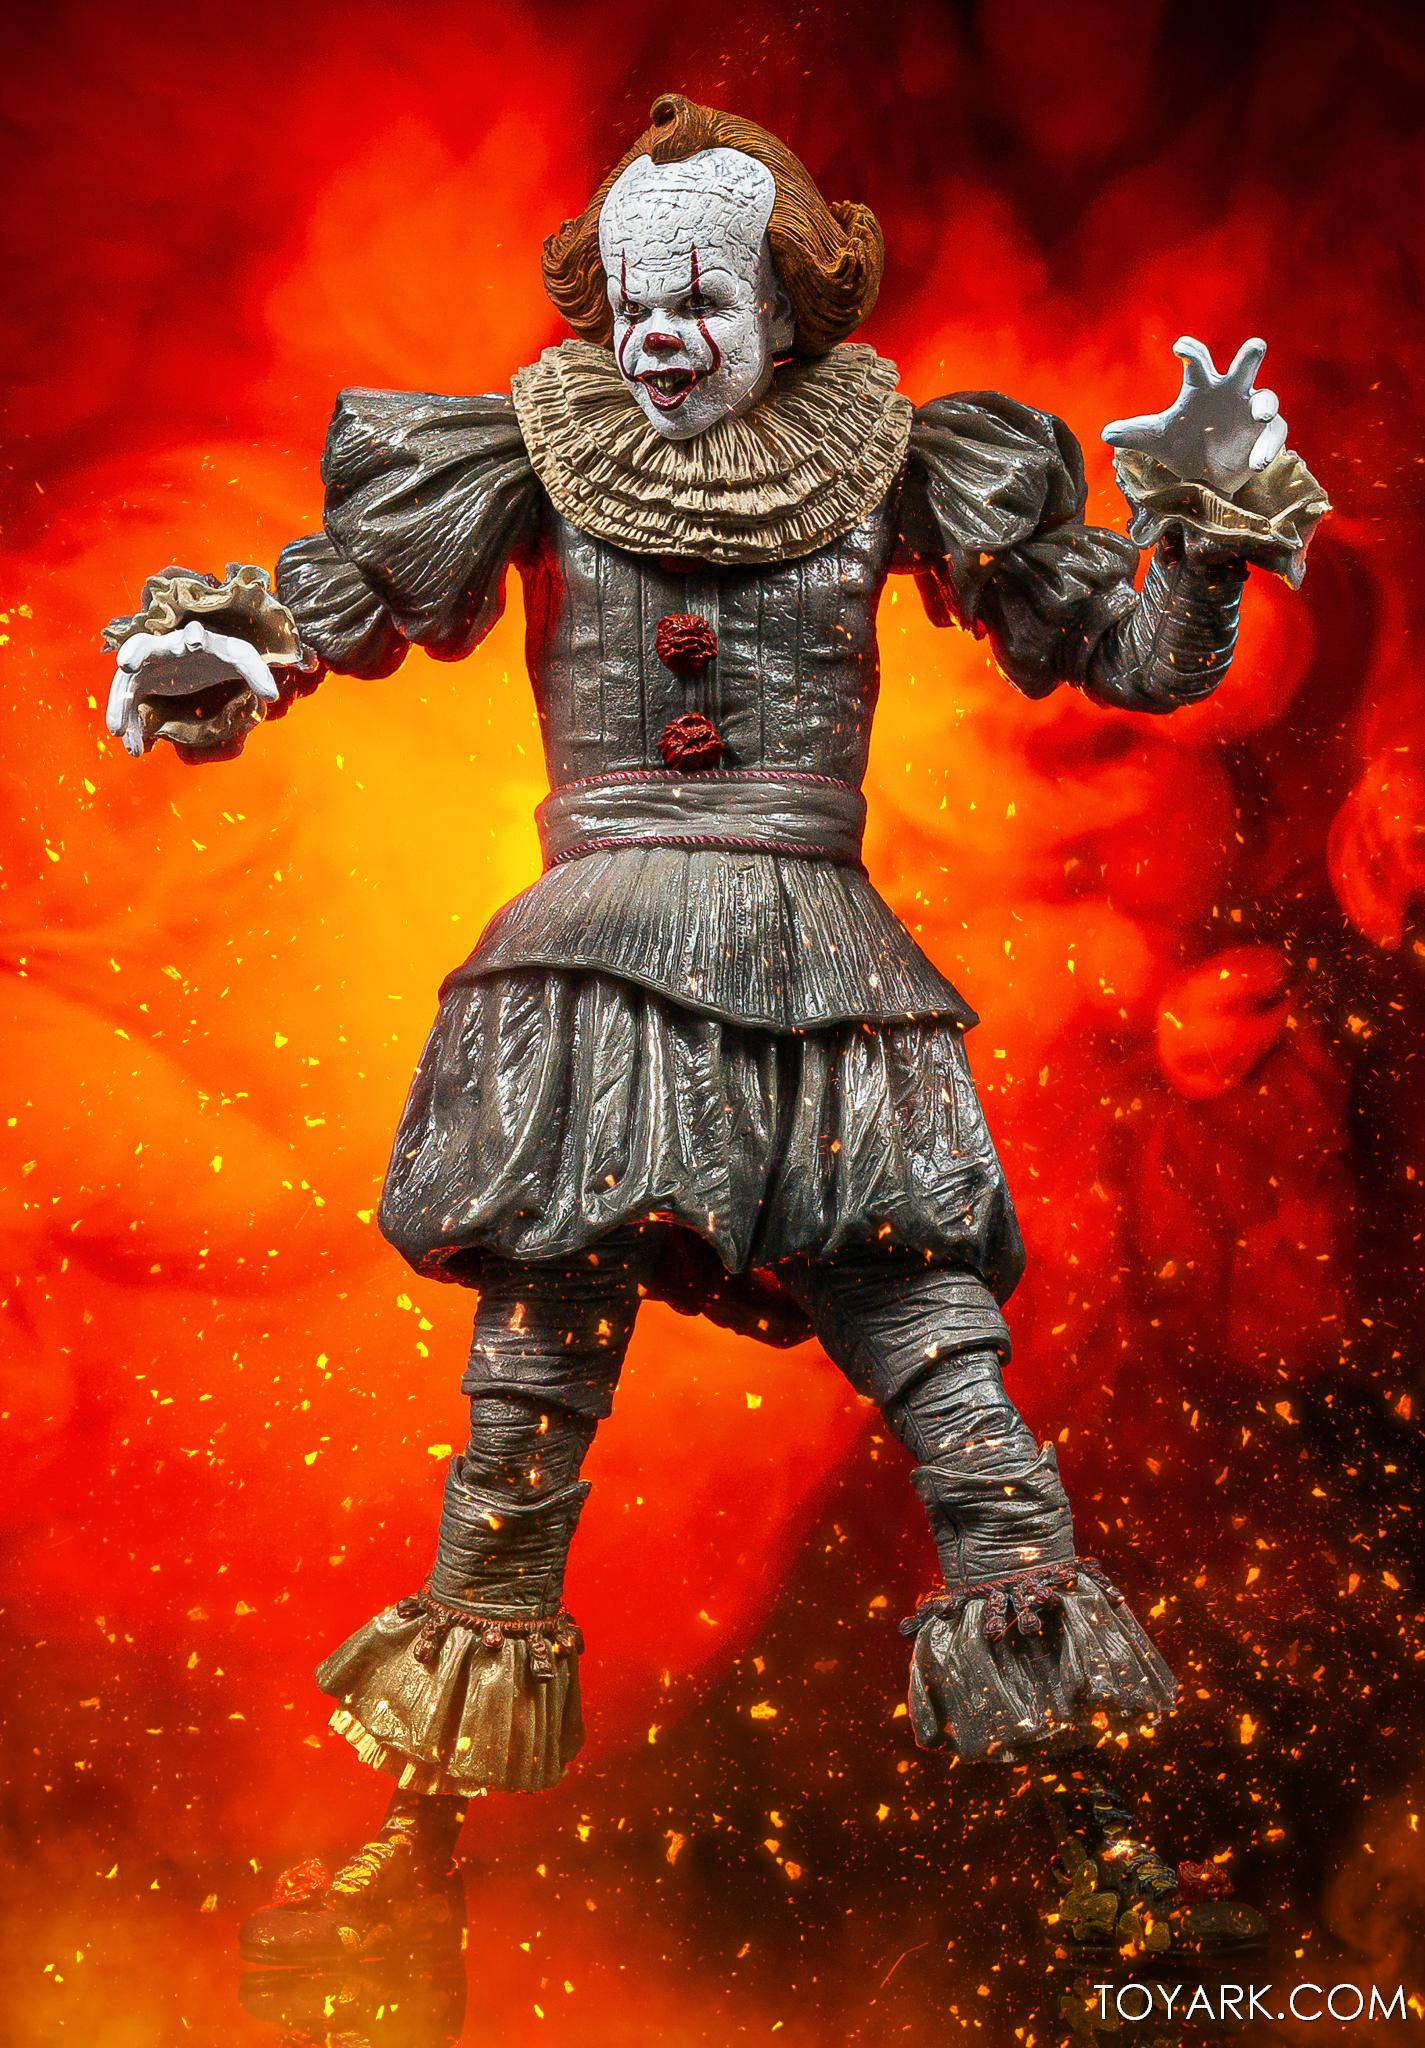 https://news.toyark.com/wp-content/uploads/sites/4/2020/06/NECA-IT-2-Ultimate-Pennywise-040.jpg